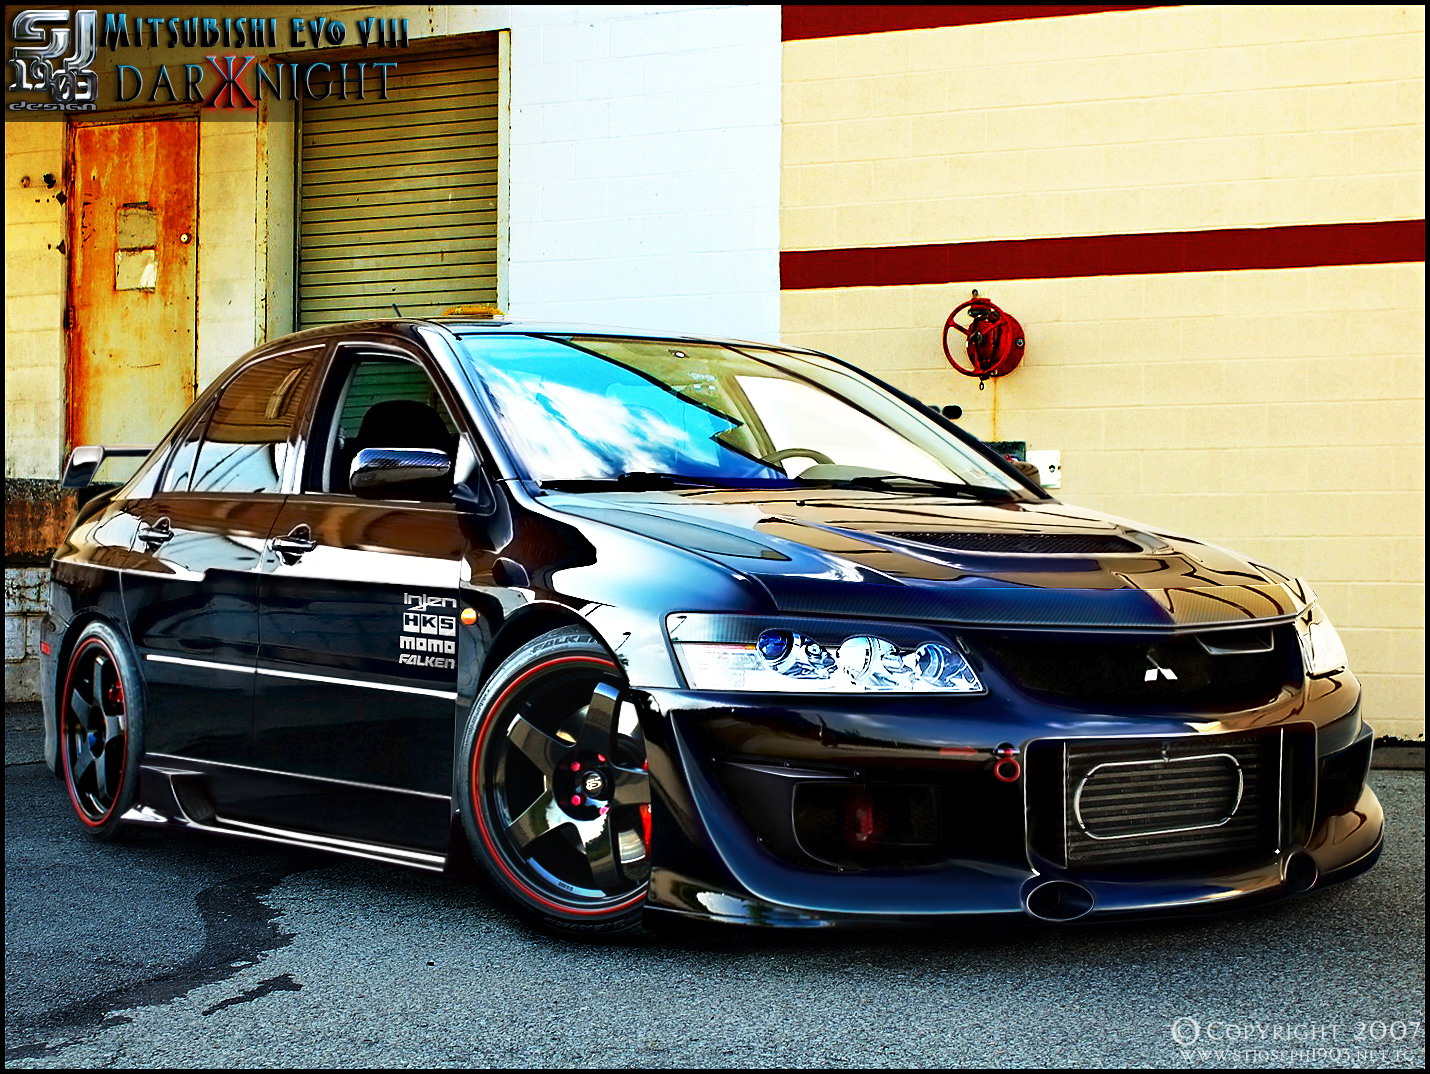 Free Download Mitsubishi Evo Viii By Stjoseph1903 1430x1074